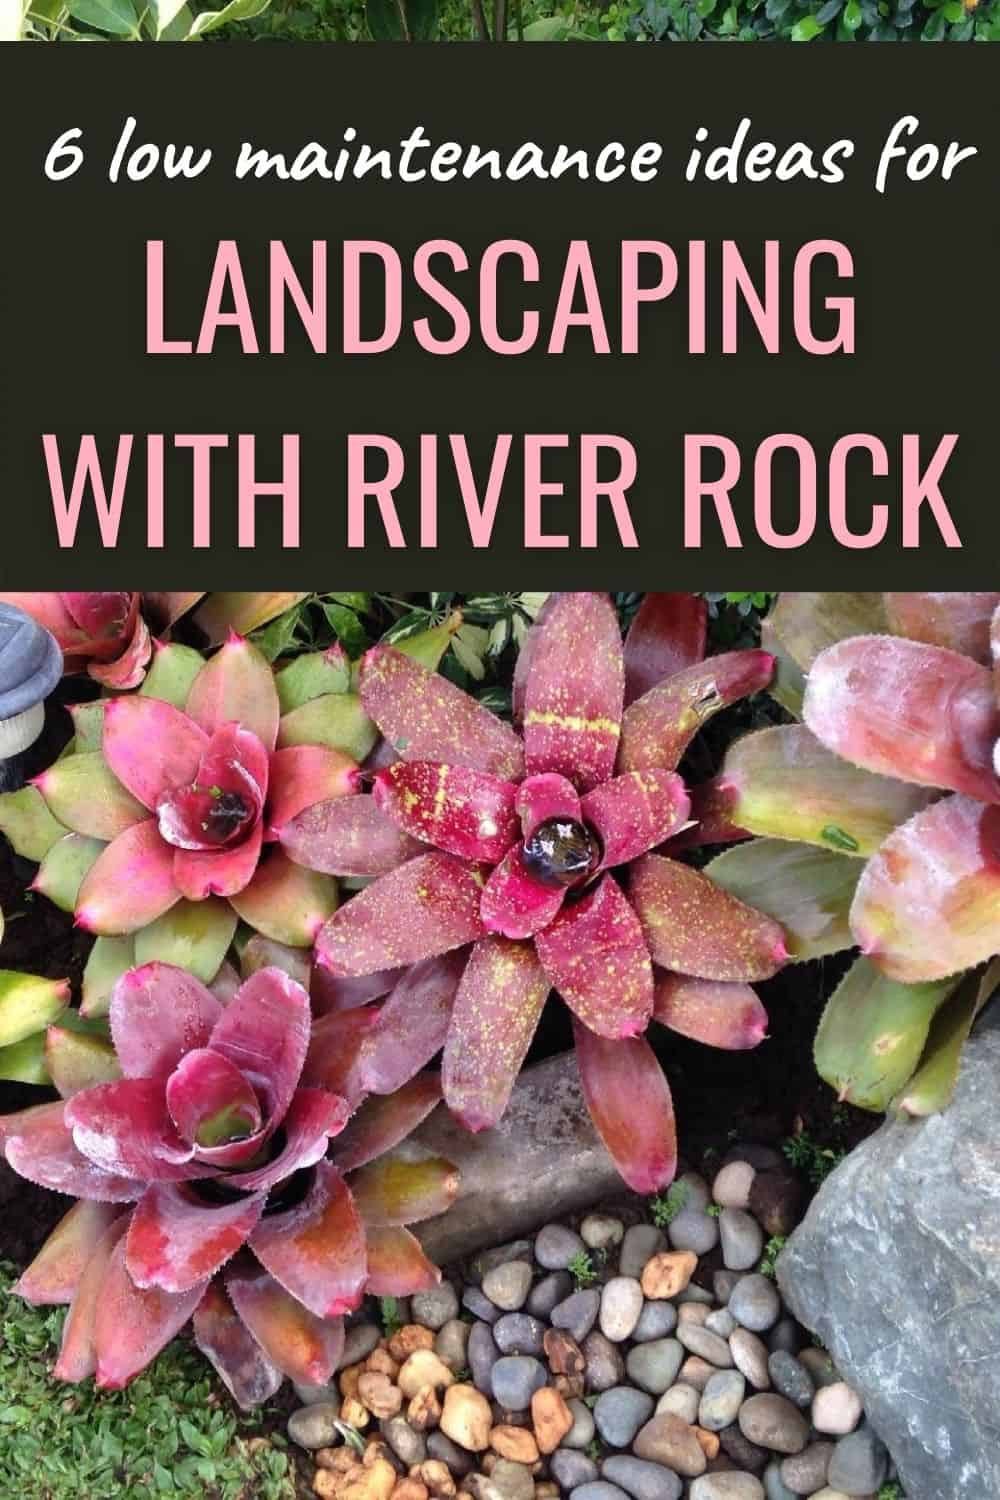 6 low maintenance ideas for landscaping with river rock